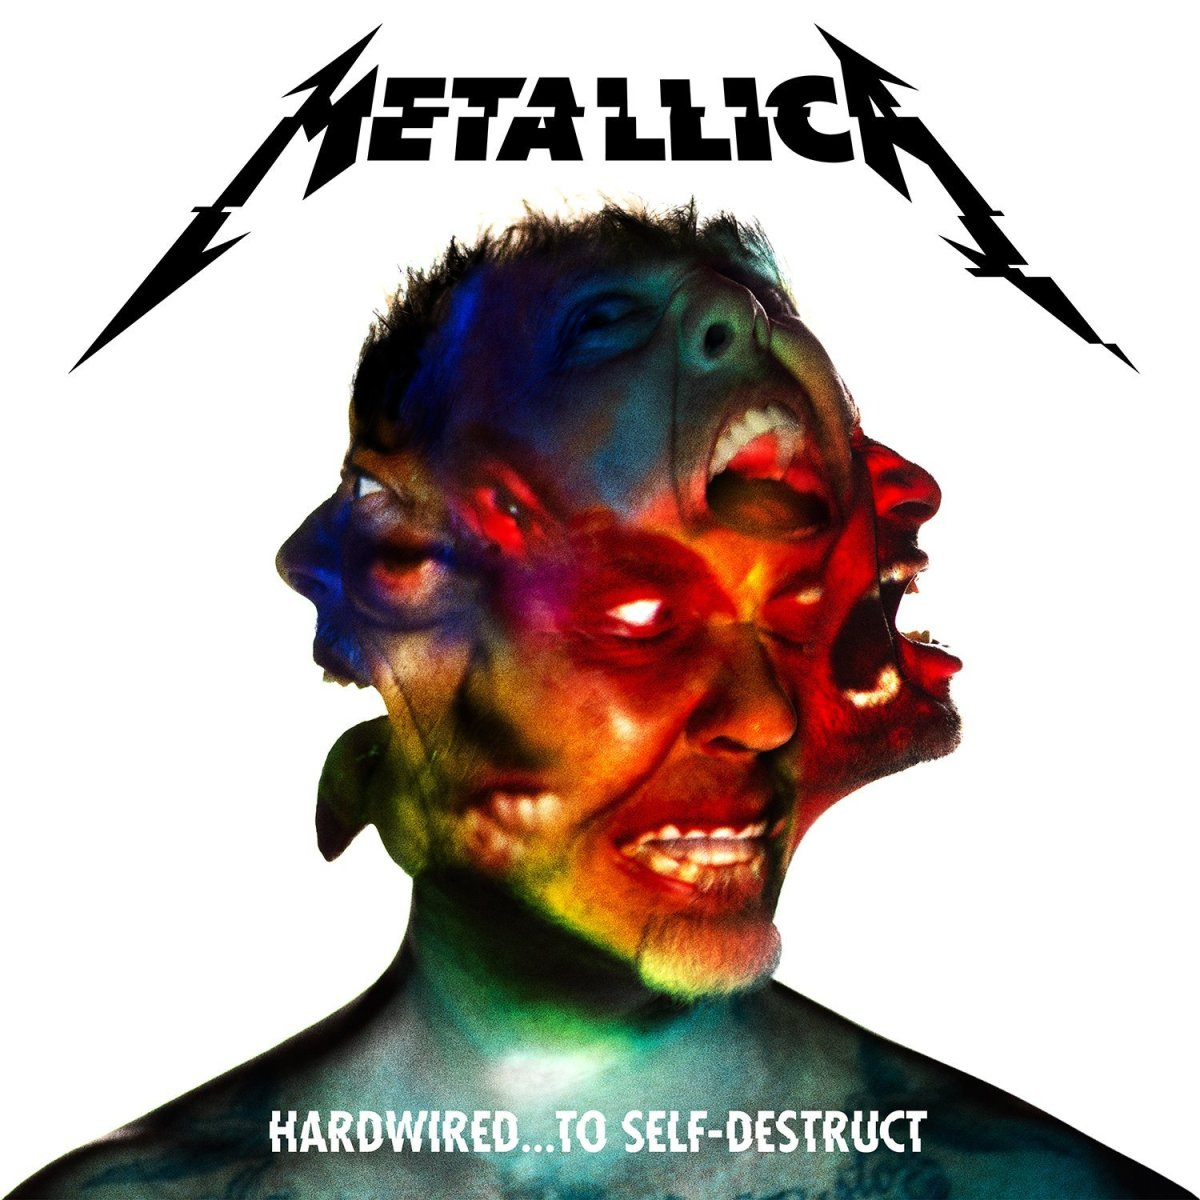 Metallica Hardwired to Self Destruct: Their Best Album in 25 Years